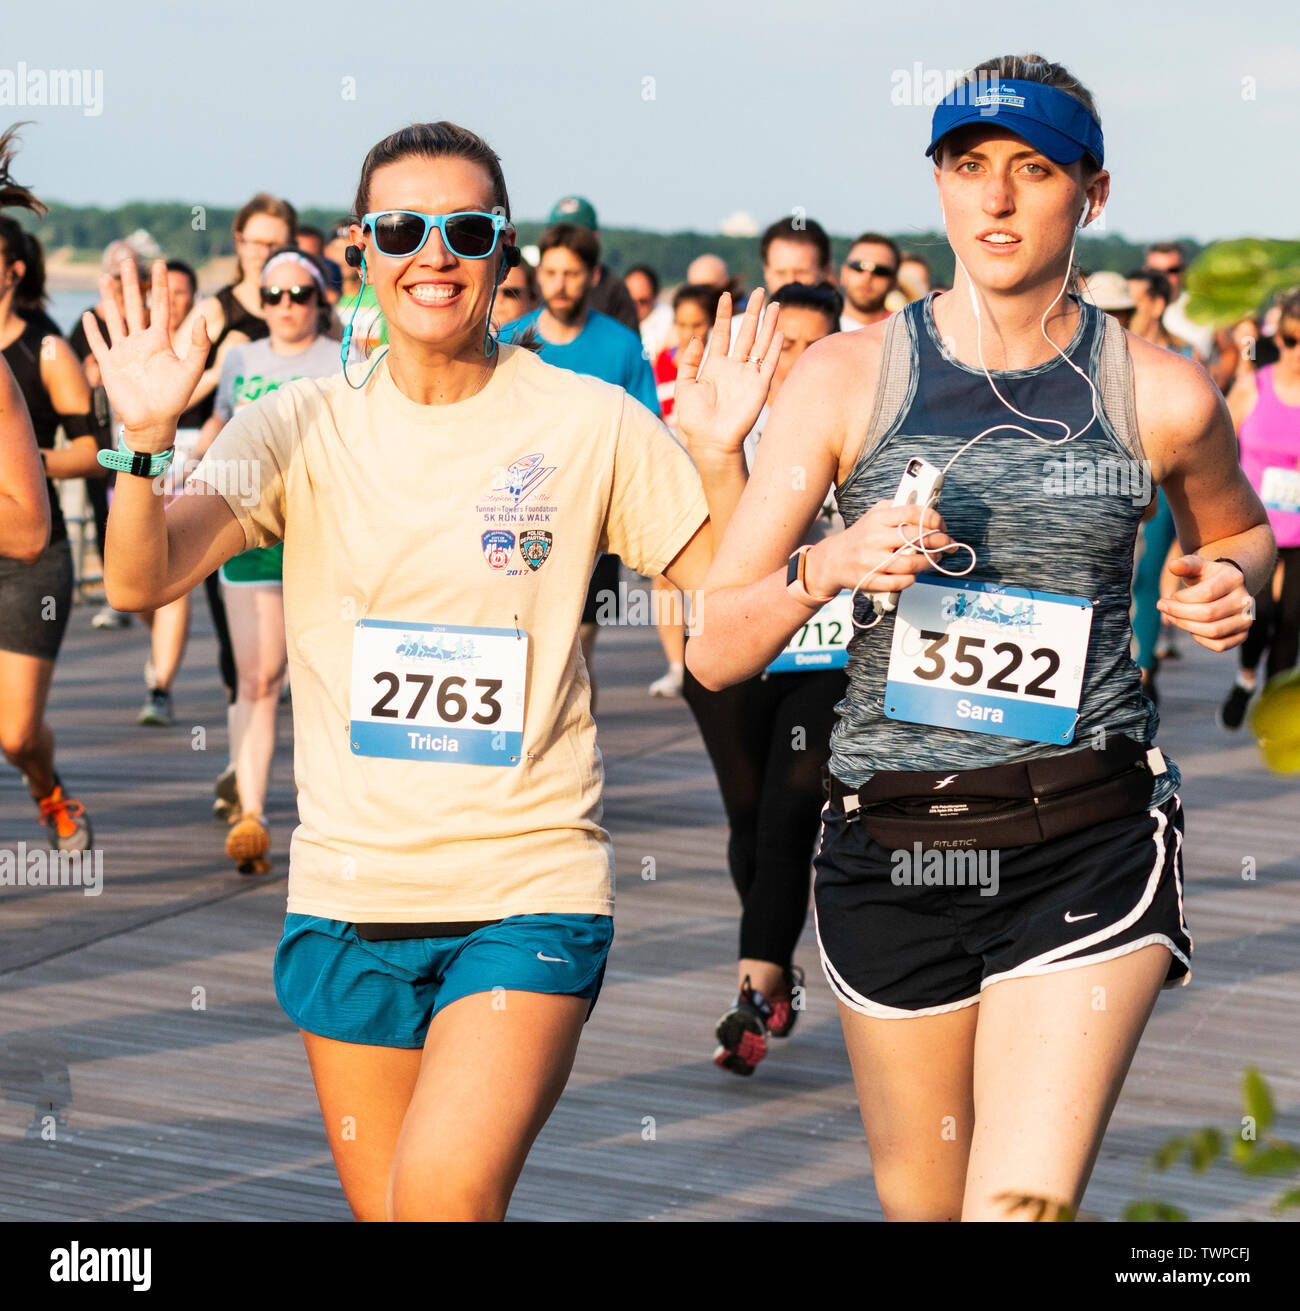 Kings Park, New York, USA - 17 June 2019: A happy female runner is waving at the camera during the 10K State Parks summer seiries running race at Sunk - Stock Image